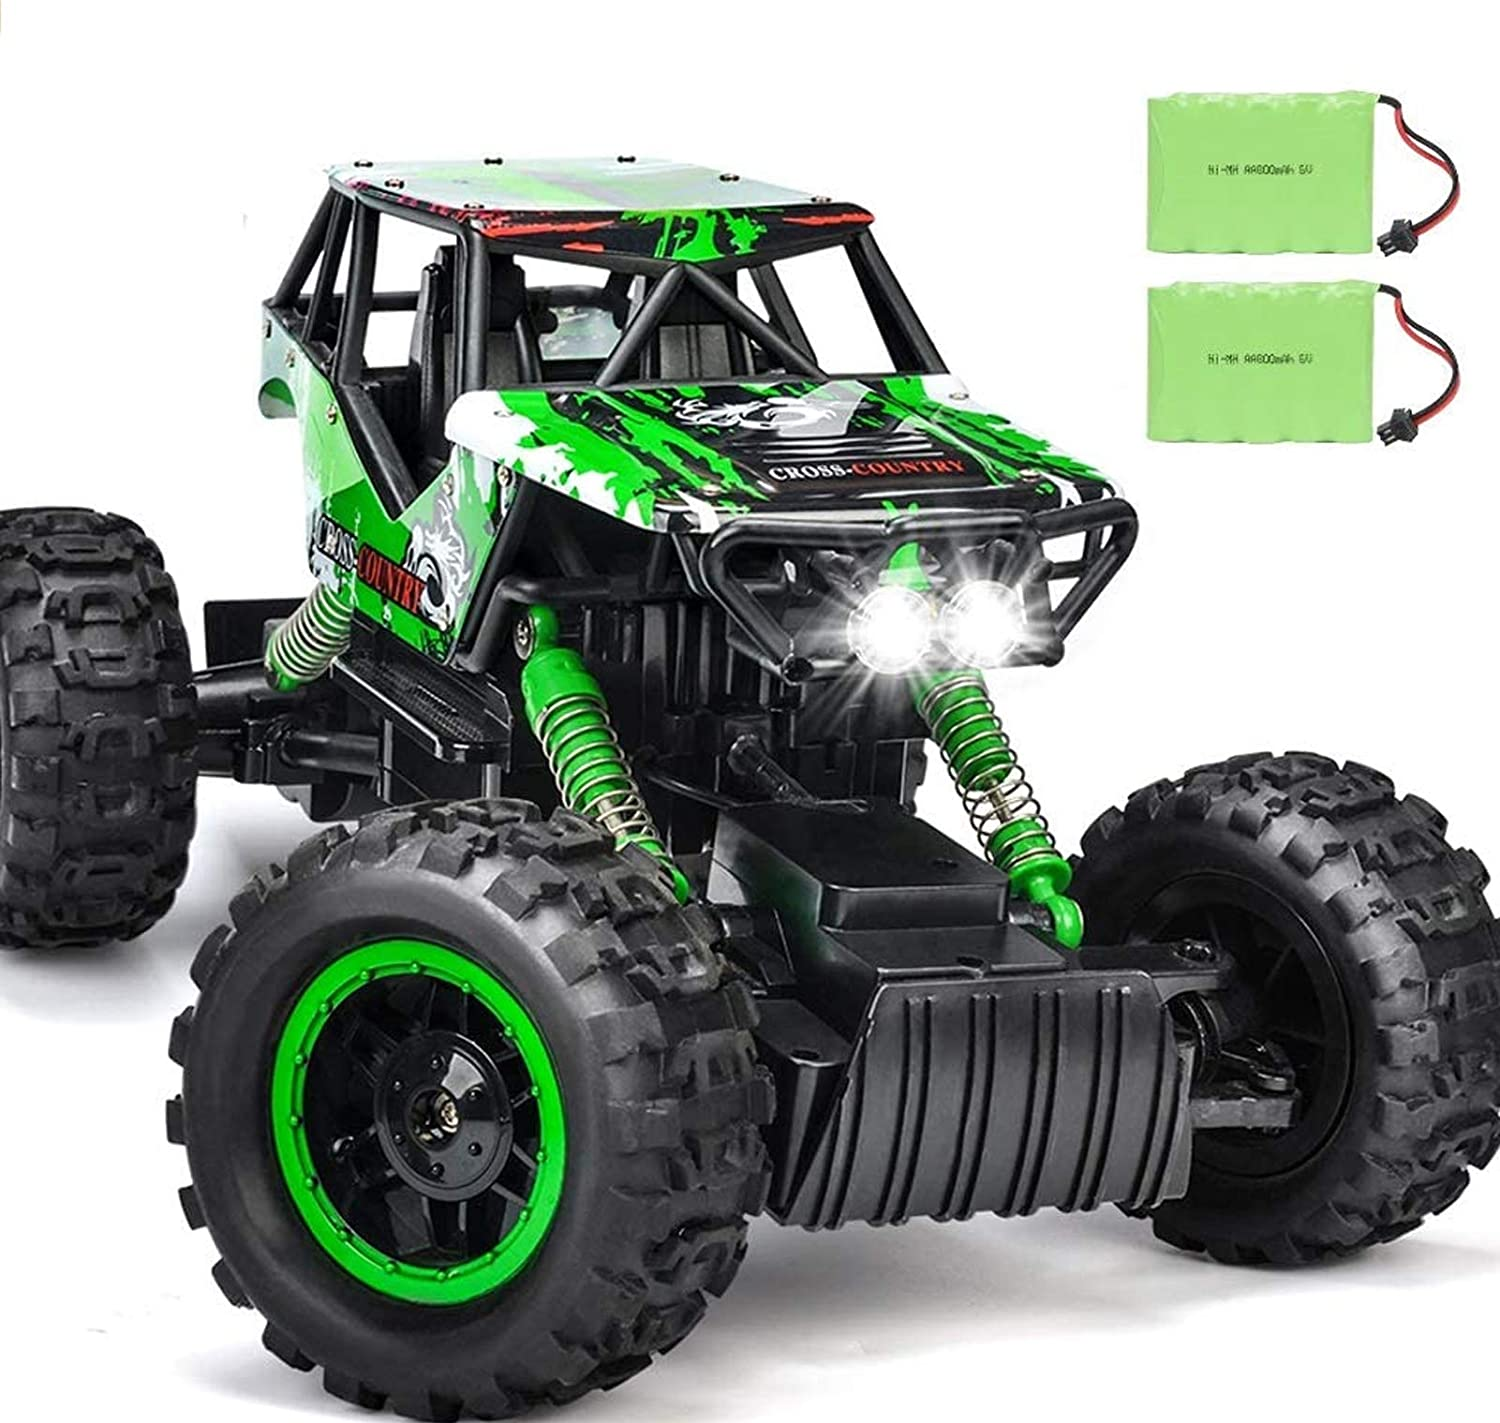 DOUBLE E RC Car 1:12 Remote Control Car Monster Trucks with Head Lights 4WD Off All Terrain RC Car Rechargeable Vehicles: Toys & Games